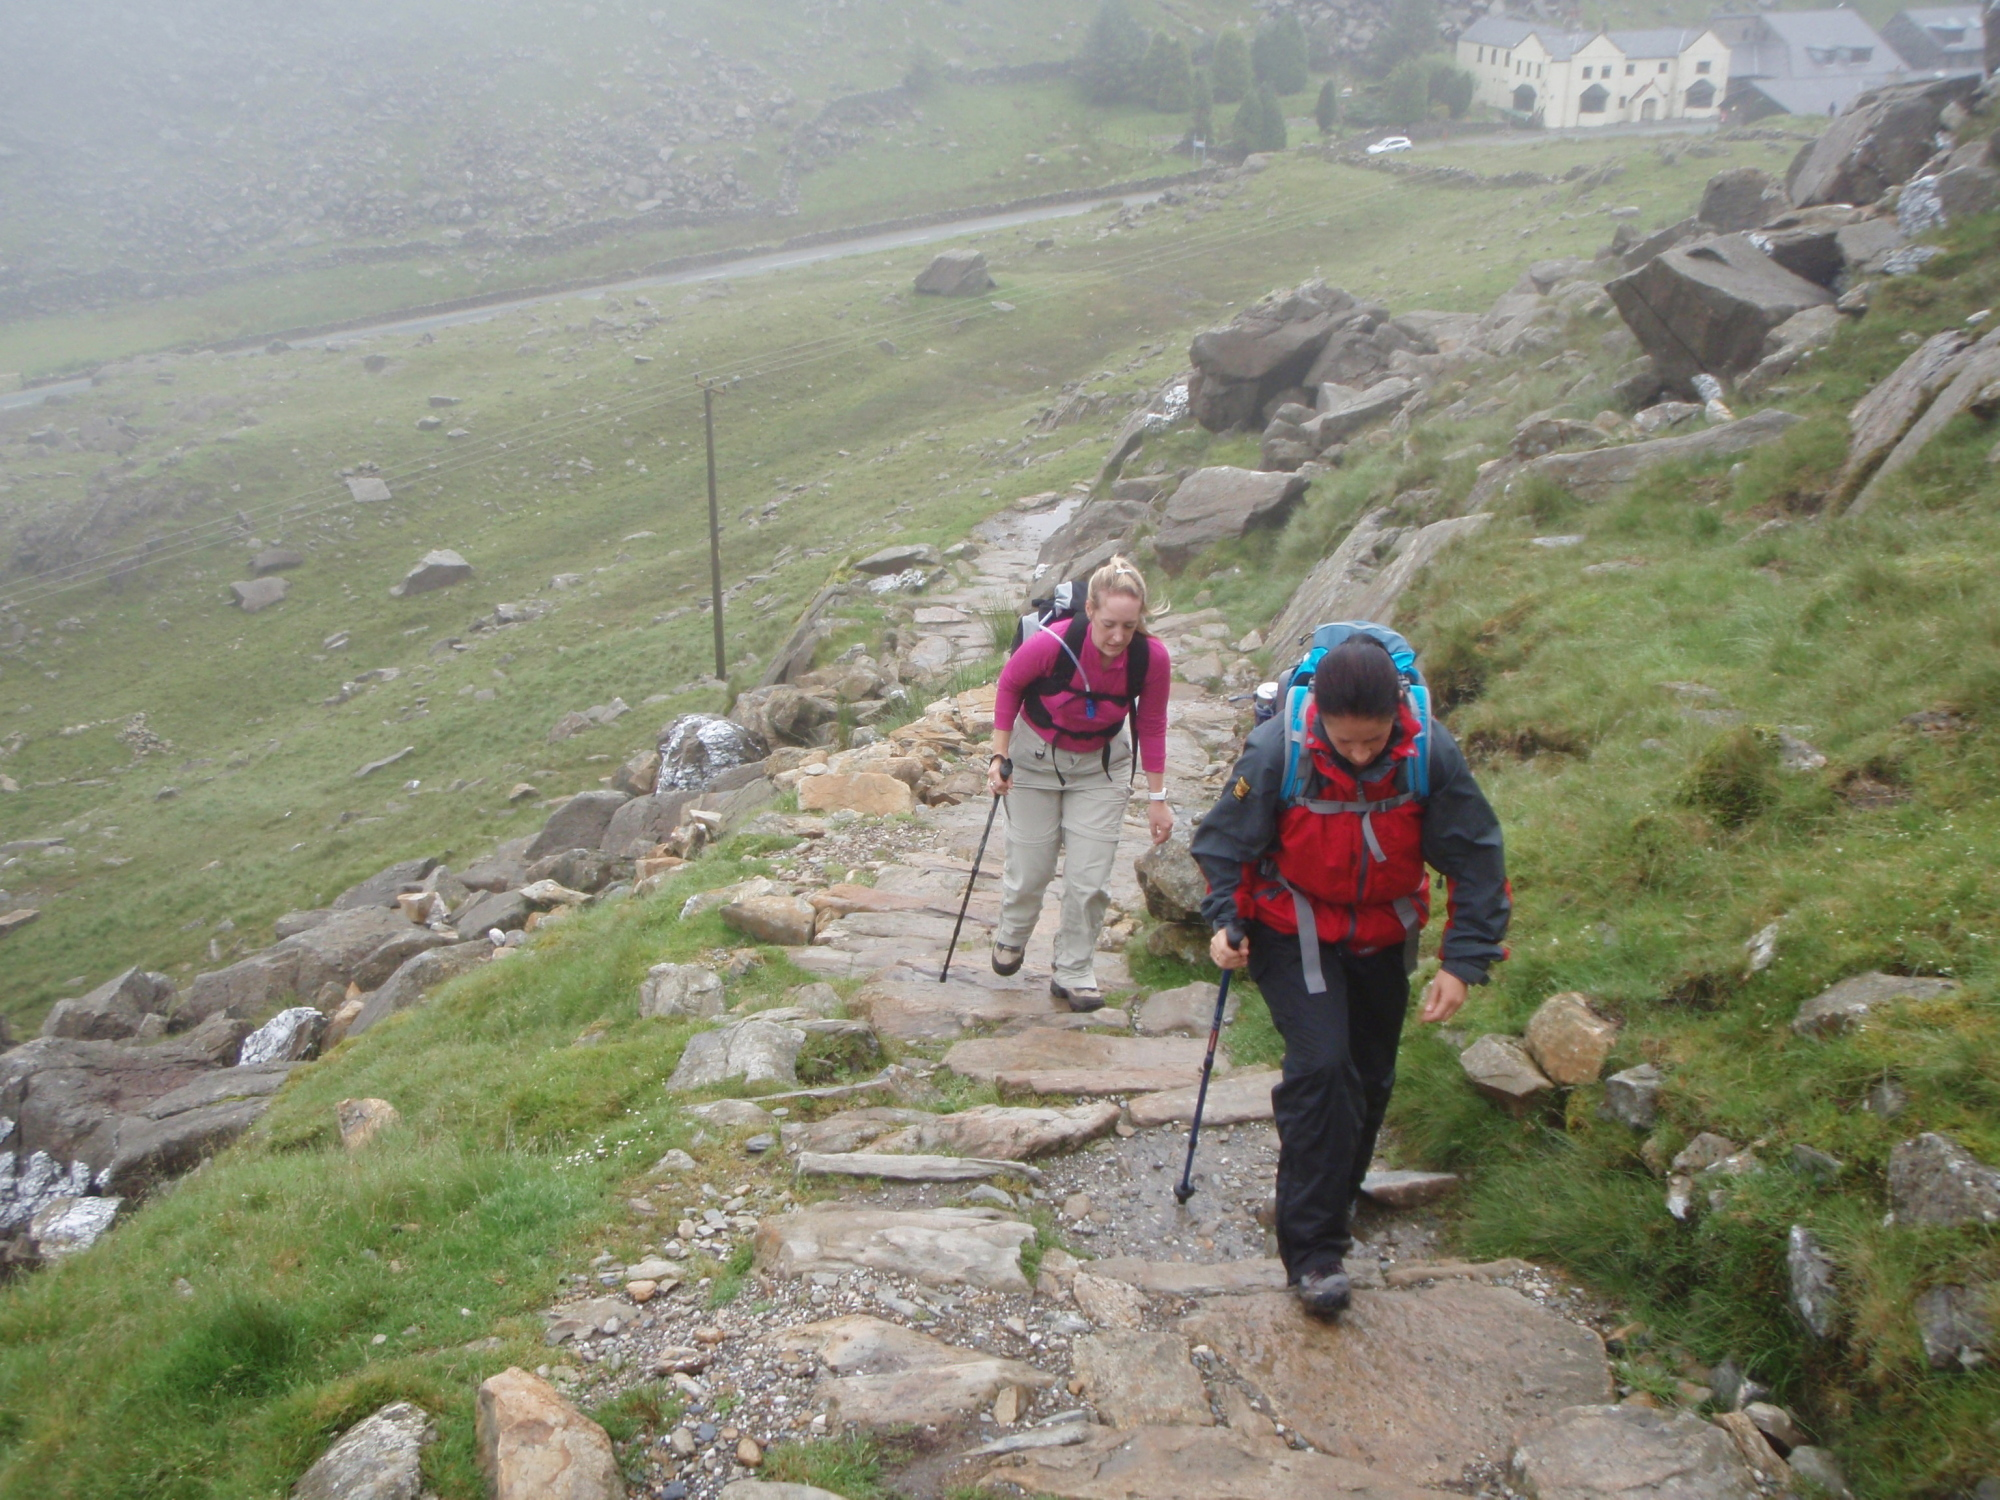 86 Yr Wyddfa Snowdon By The Pyg Track And The Miners